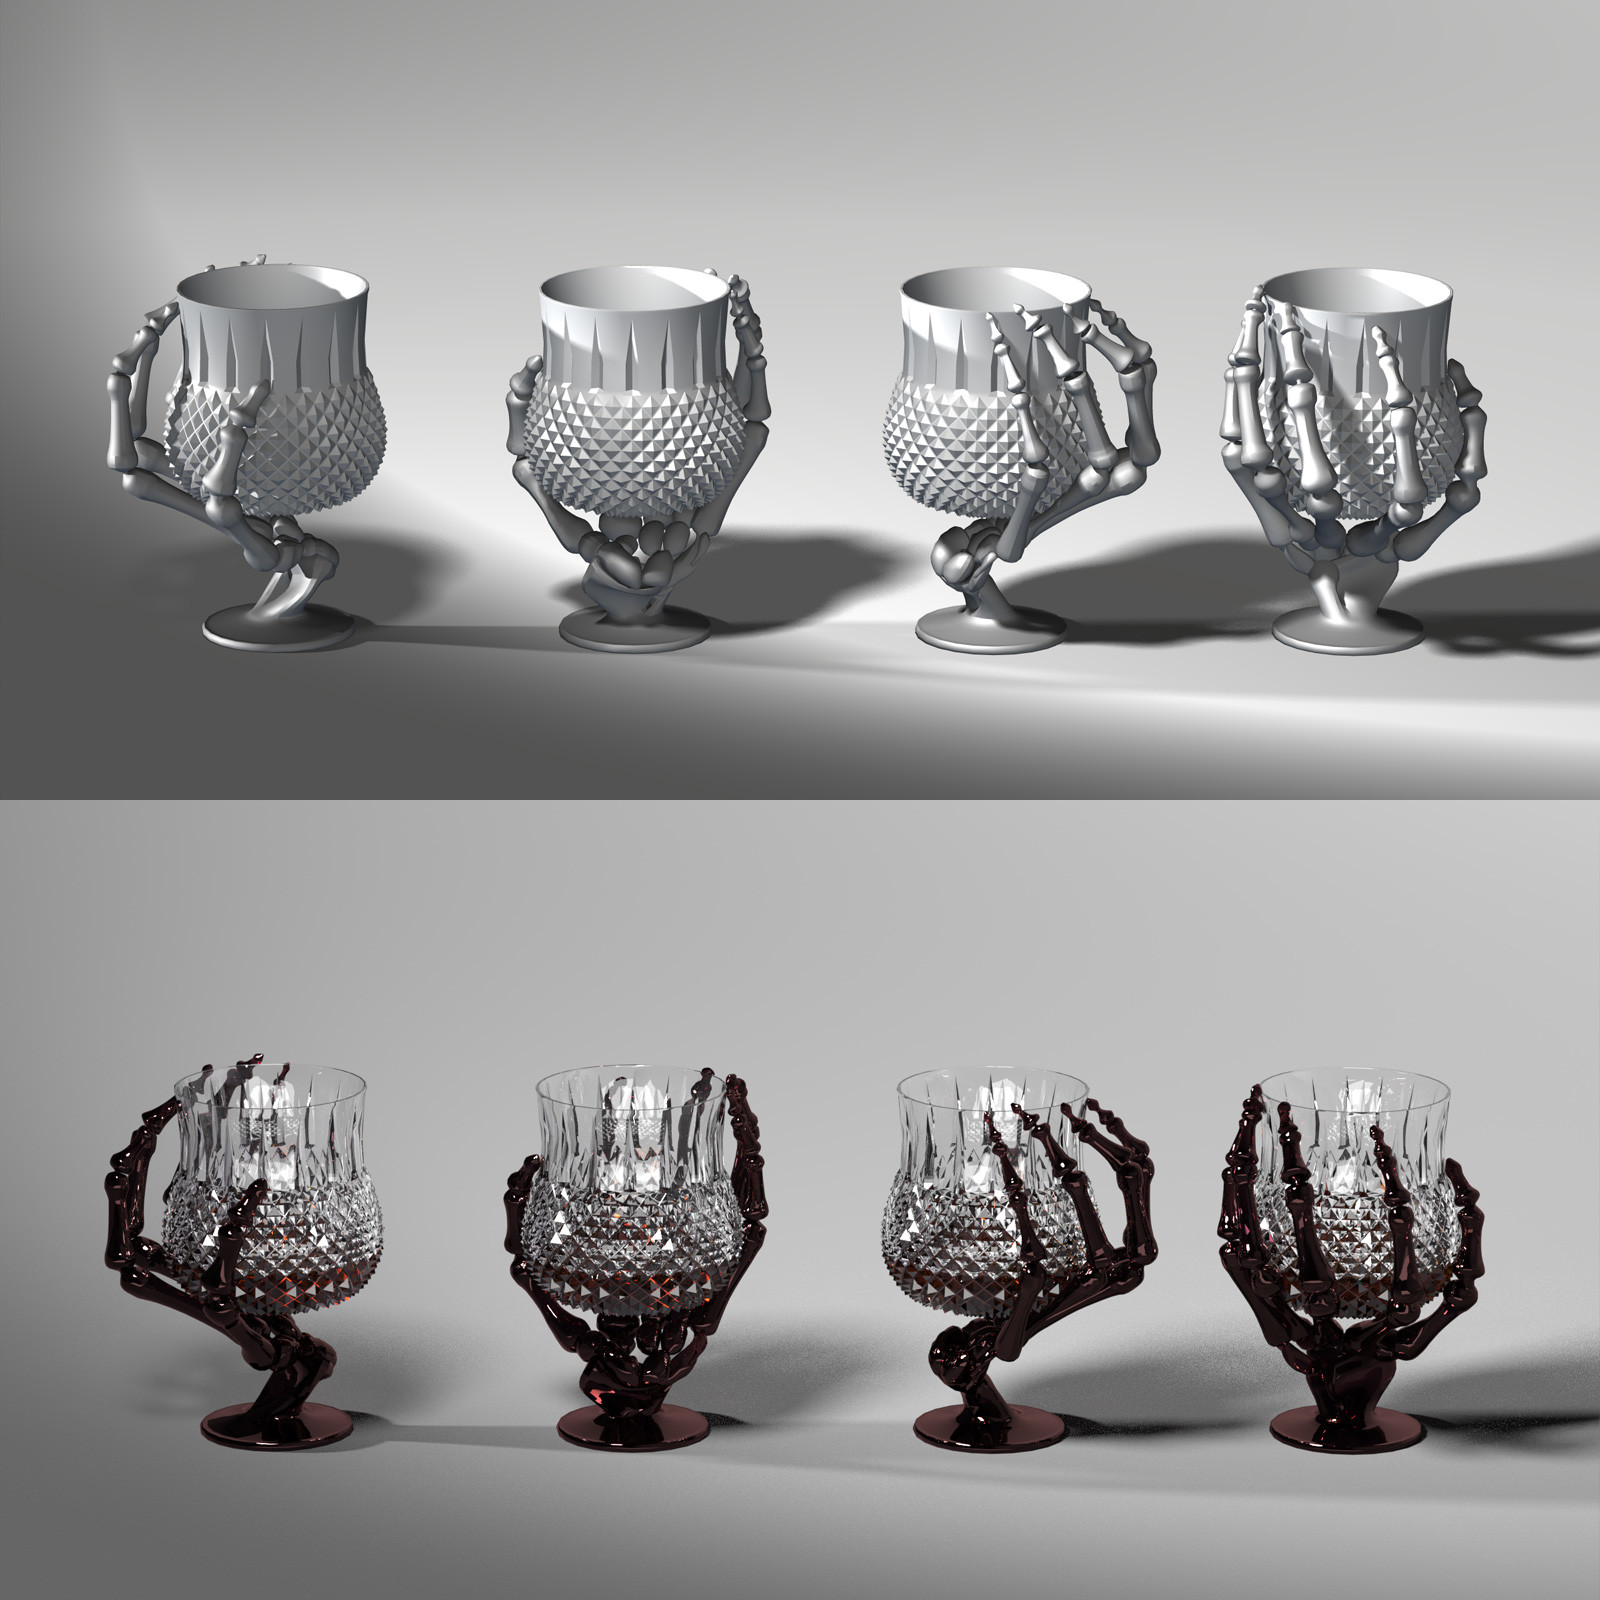 This is a 360 turnaround of the brandy snifter, rendered in SuperFly/Cycles.